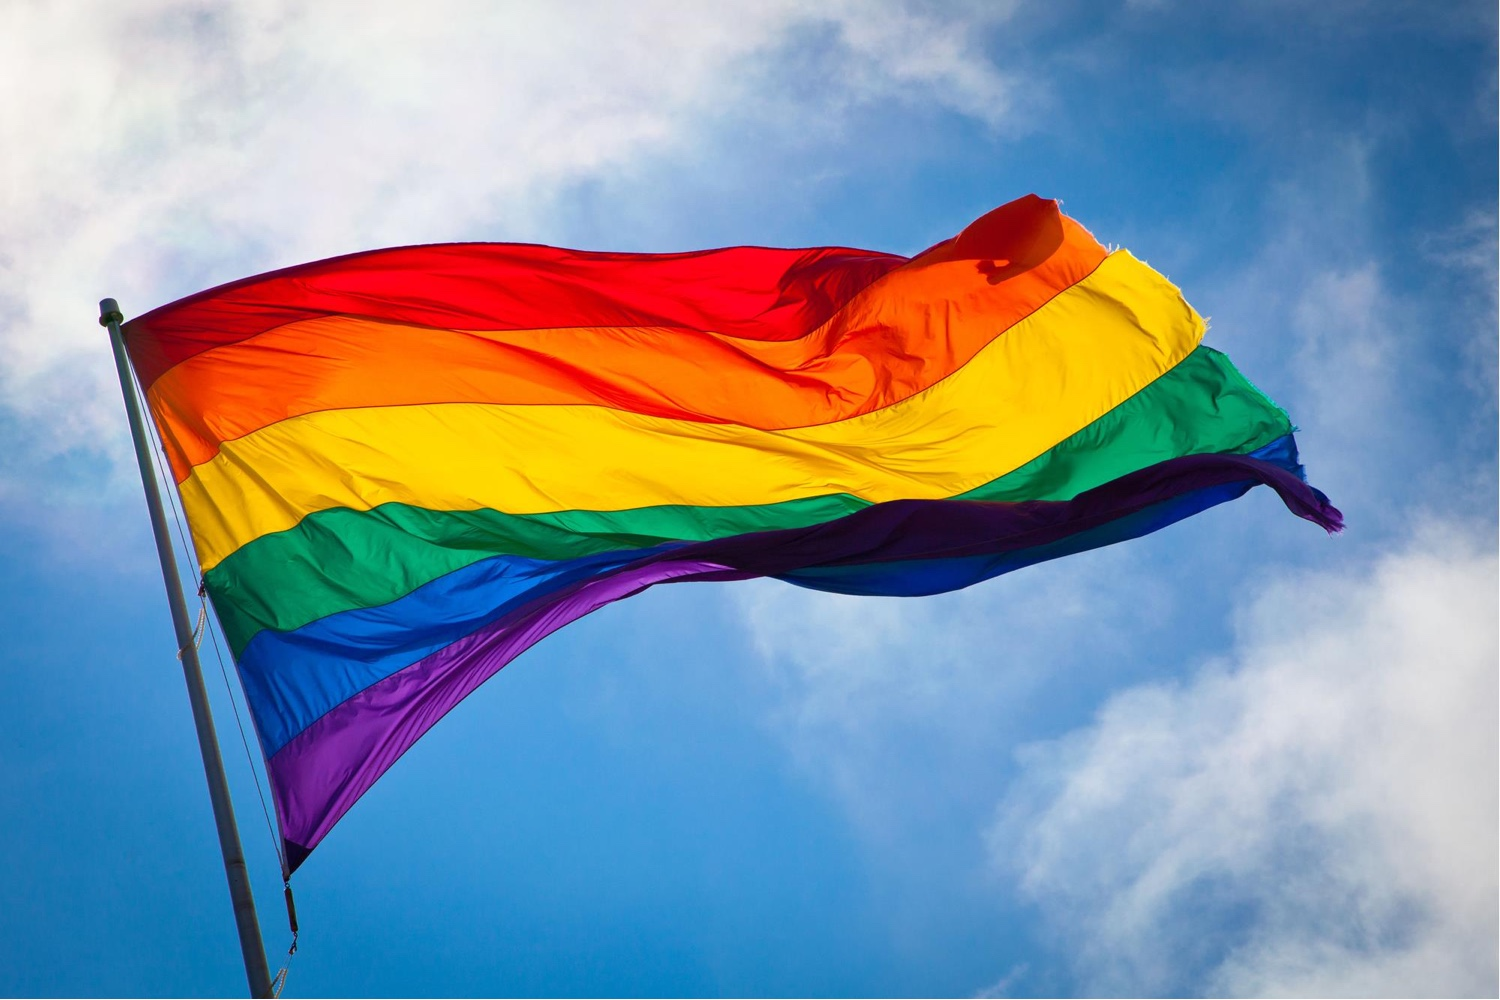 The Rainbow Flag by artist Gilbert Baker.